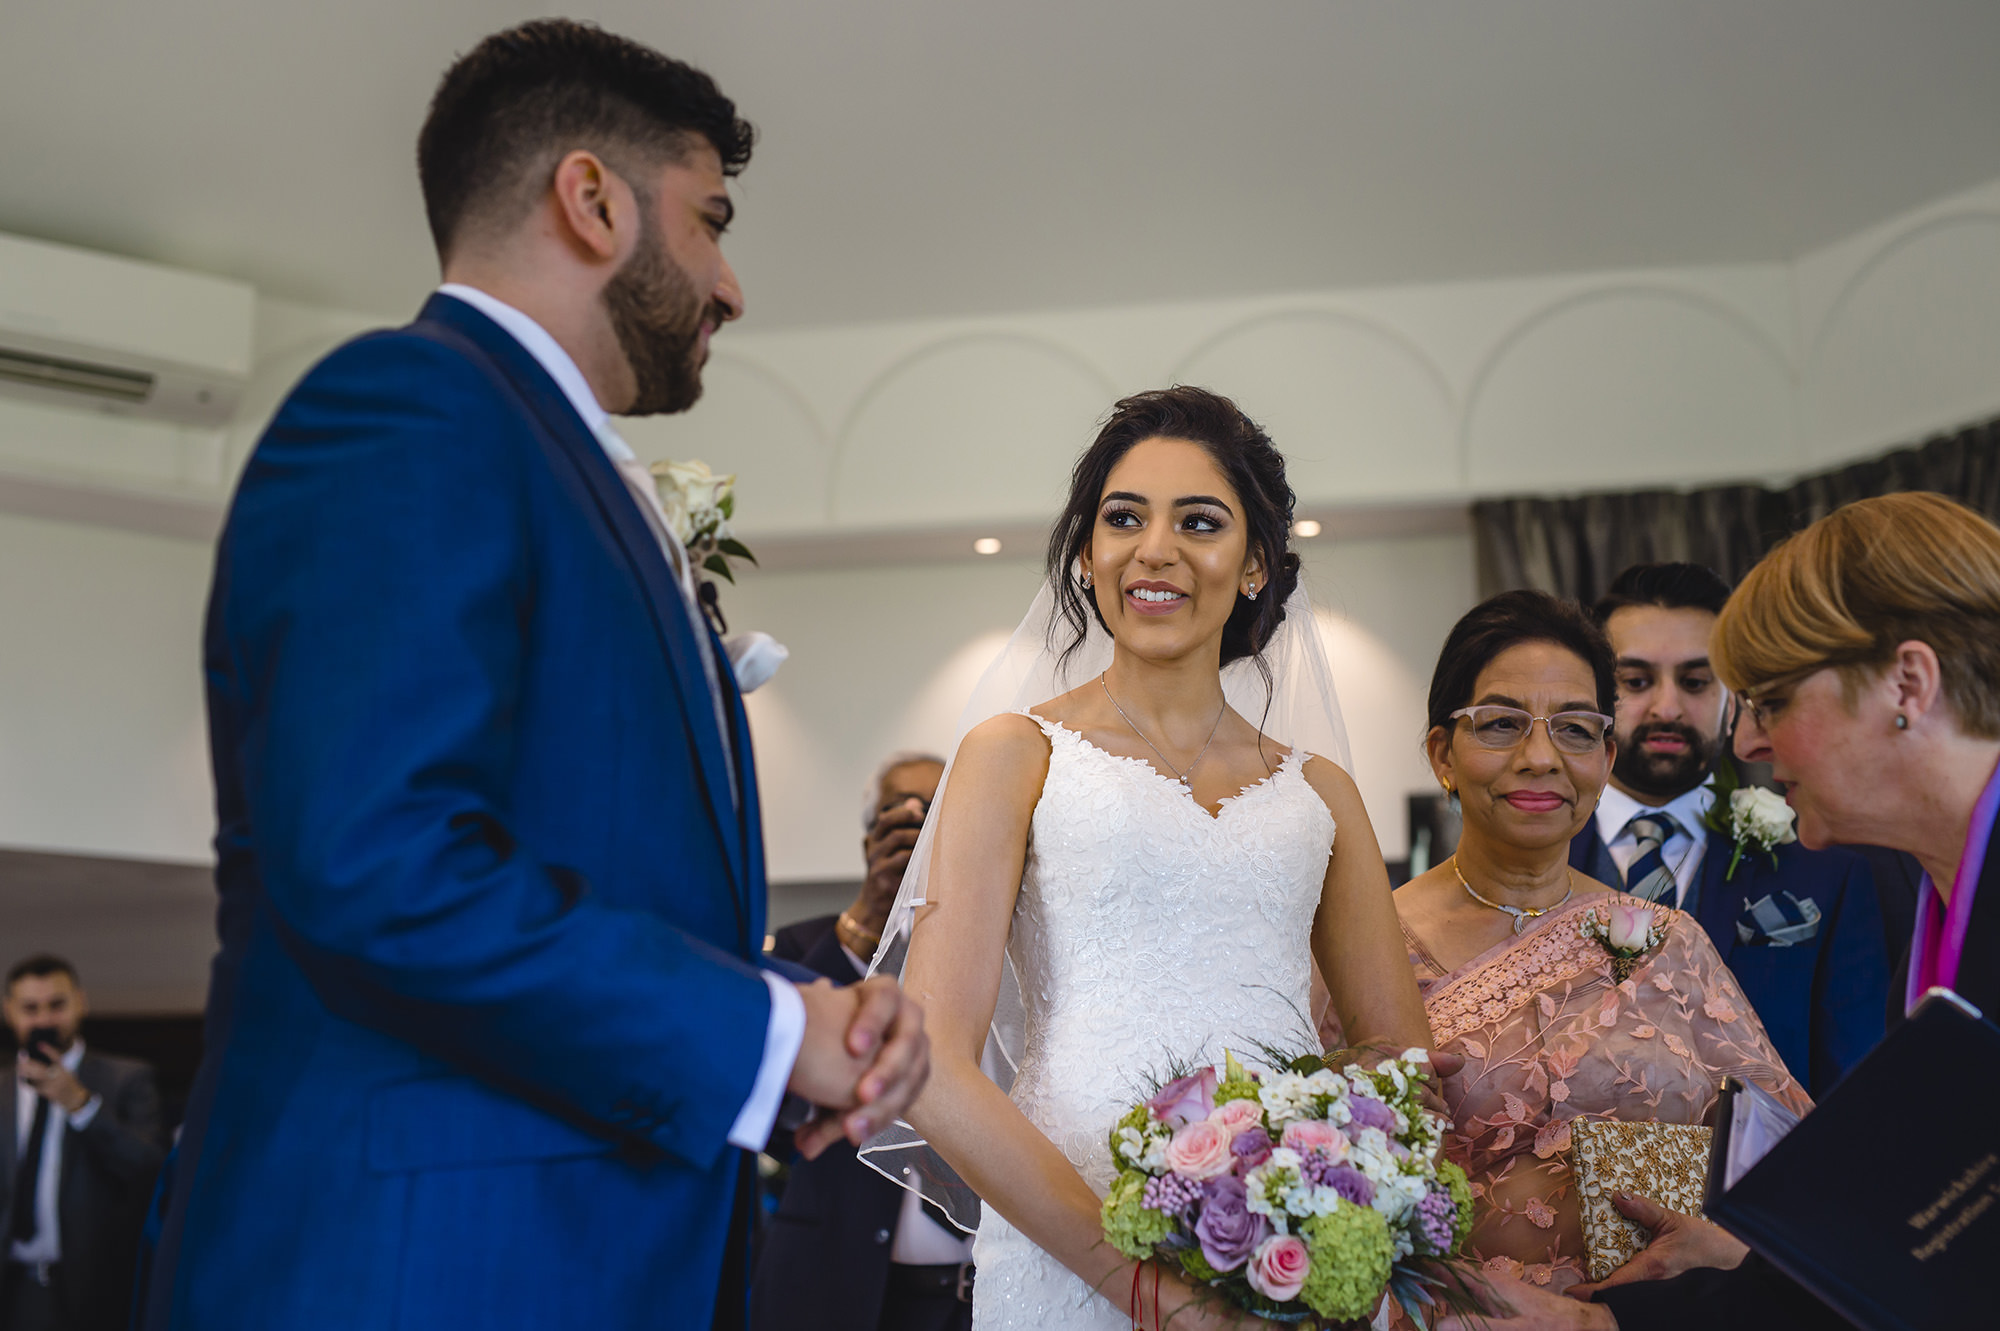 bride and groom at their civil wedding